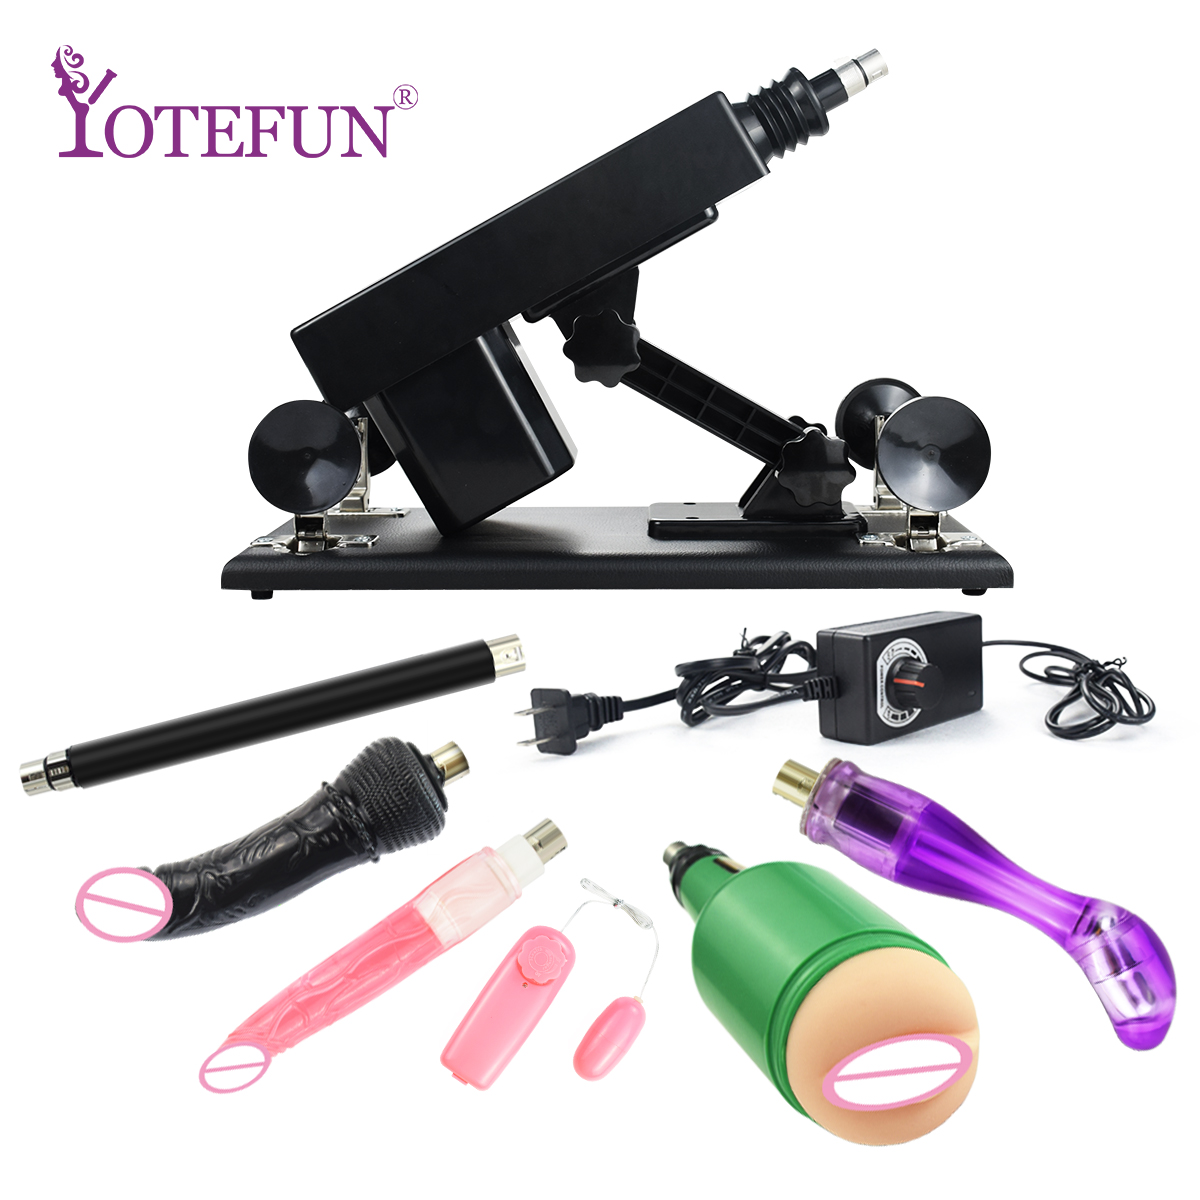 Automatic Retractable Male and Female Masturbator <font><b>Sex</b></font> <font><b>Machine</b></font> Gun <font><b>Sex</b></font> Toys For Women With Vagina Cup and <font><b>Dildos</b></font> Pretty Love image